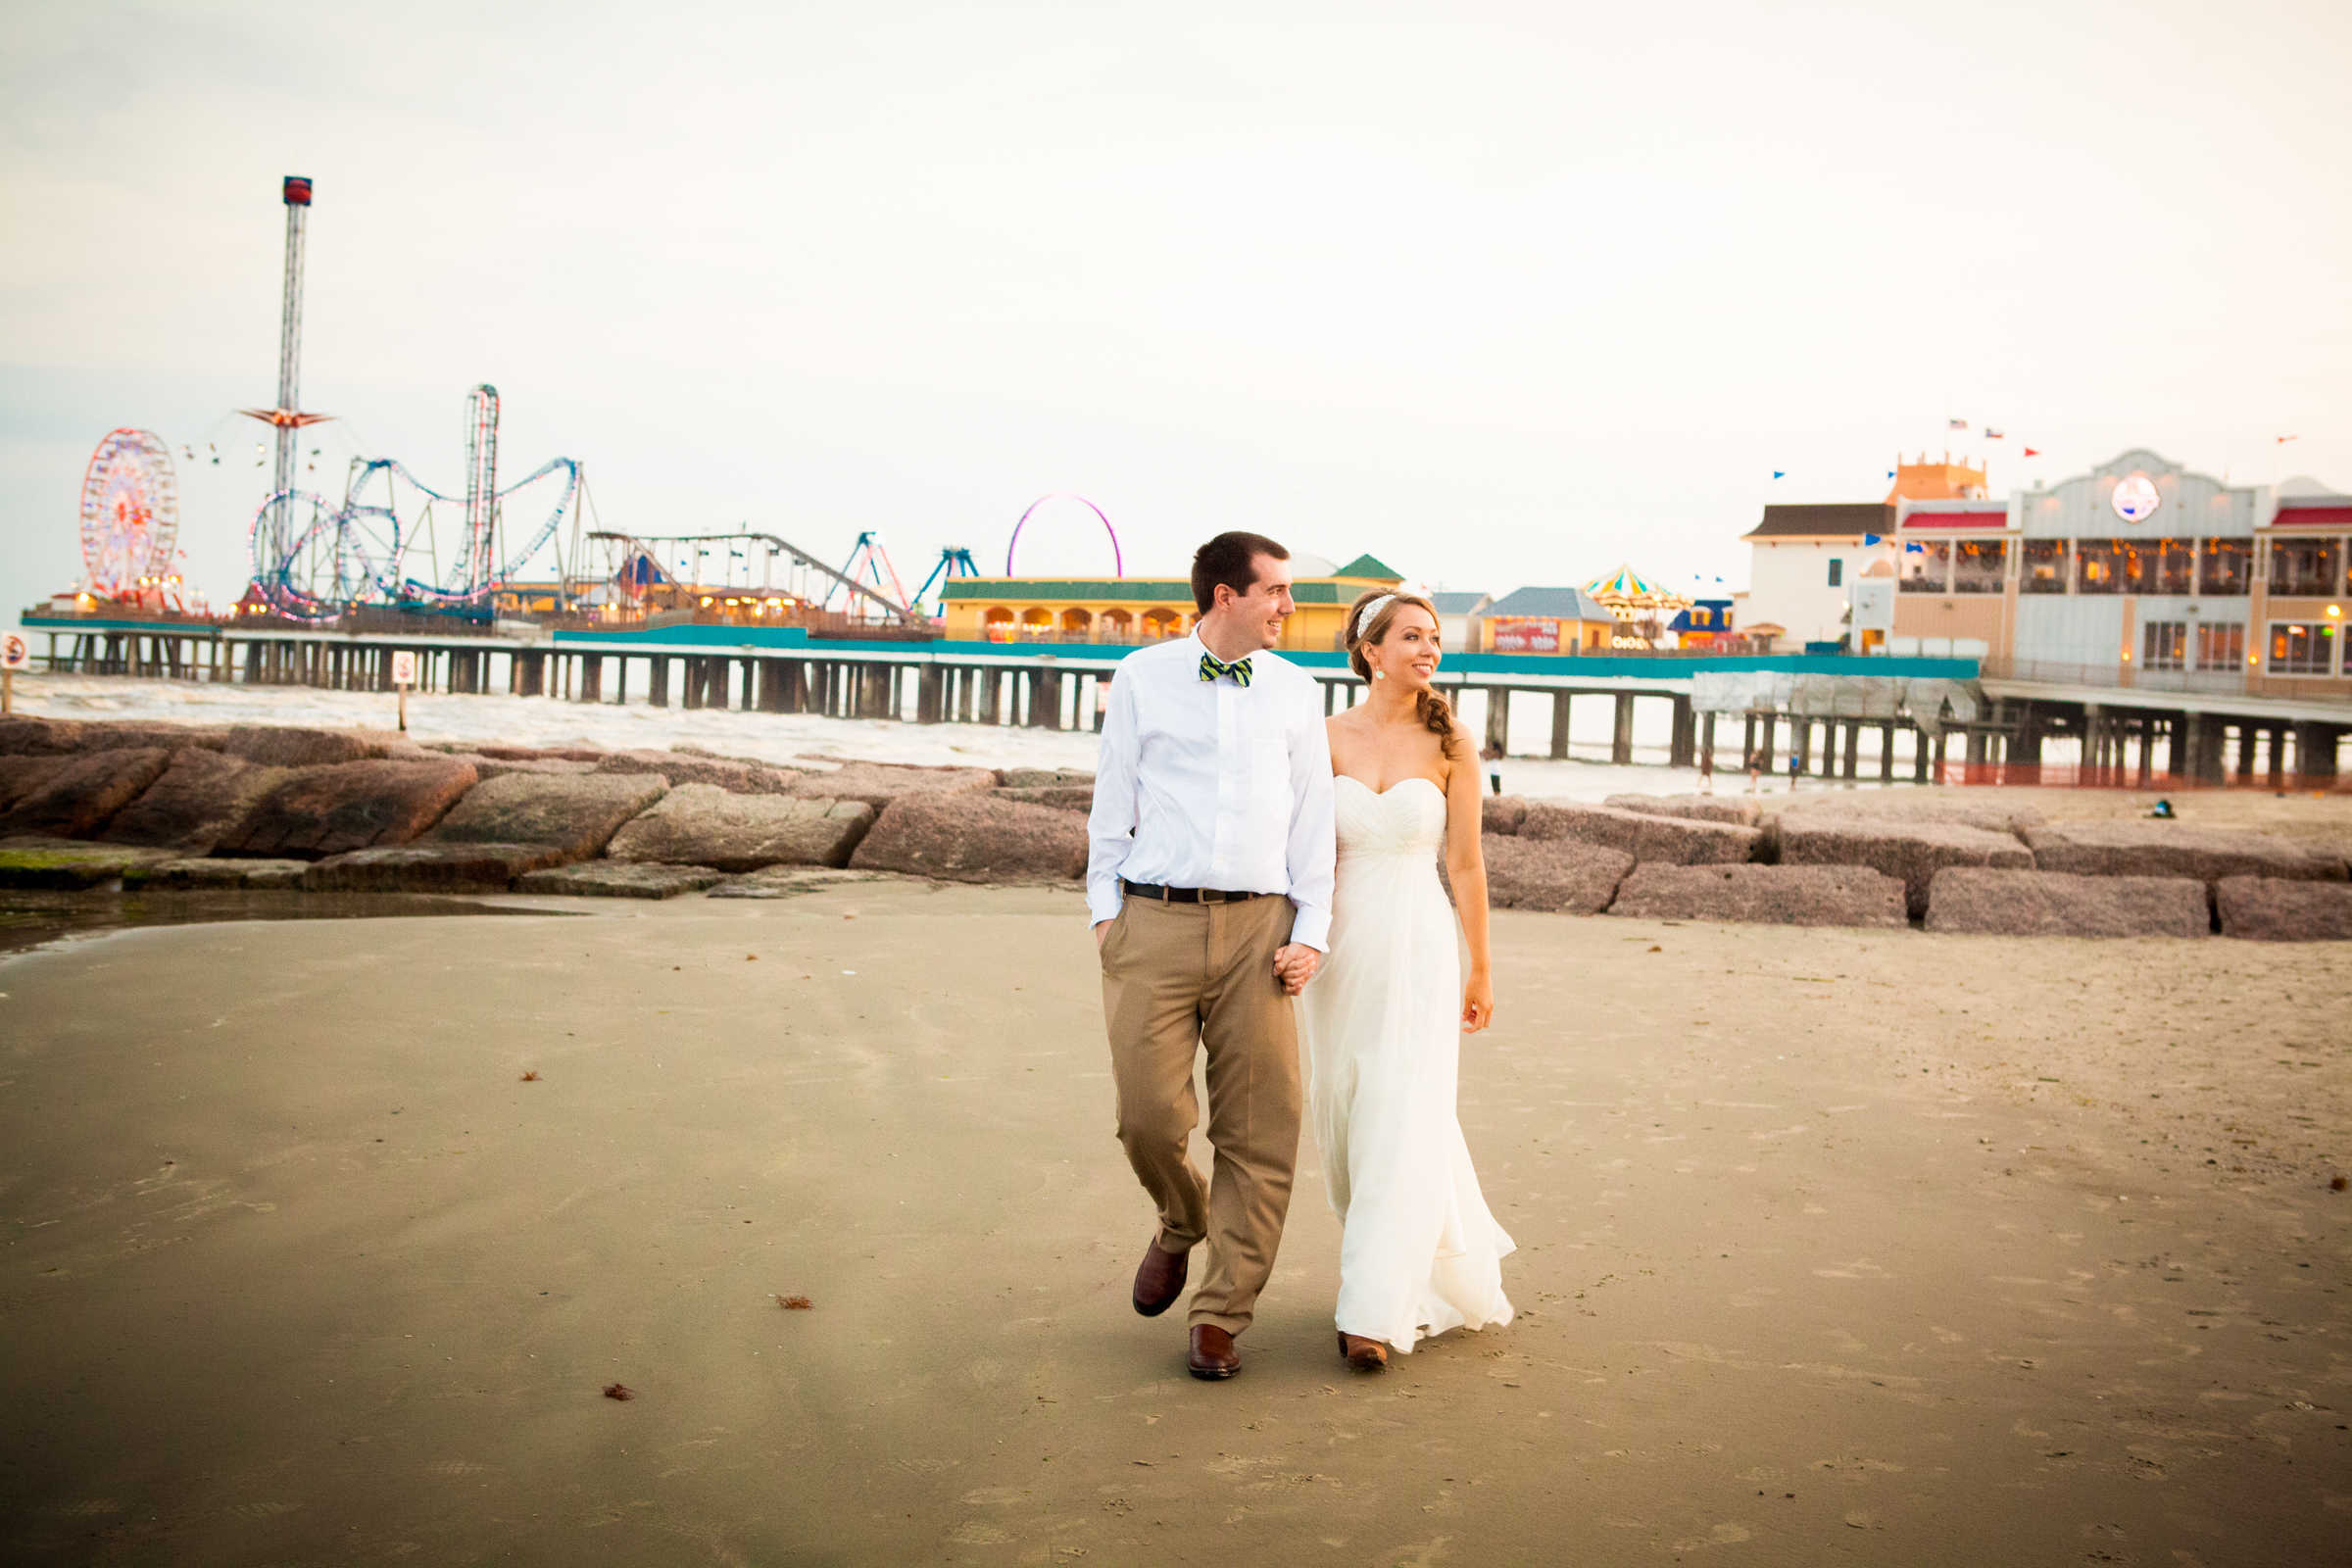 Galveston Beach Wedding | Galveston Strand Bienville Social Reception